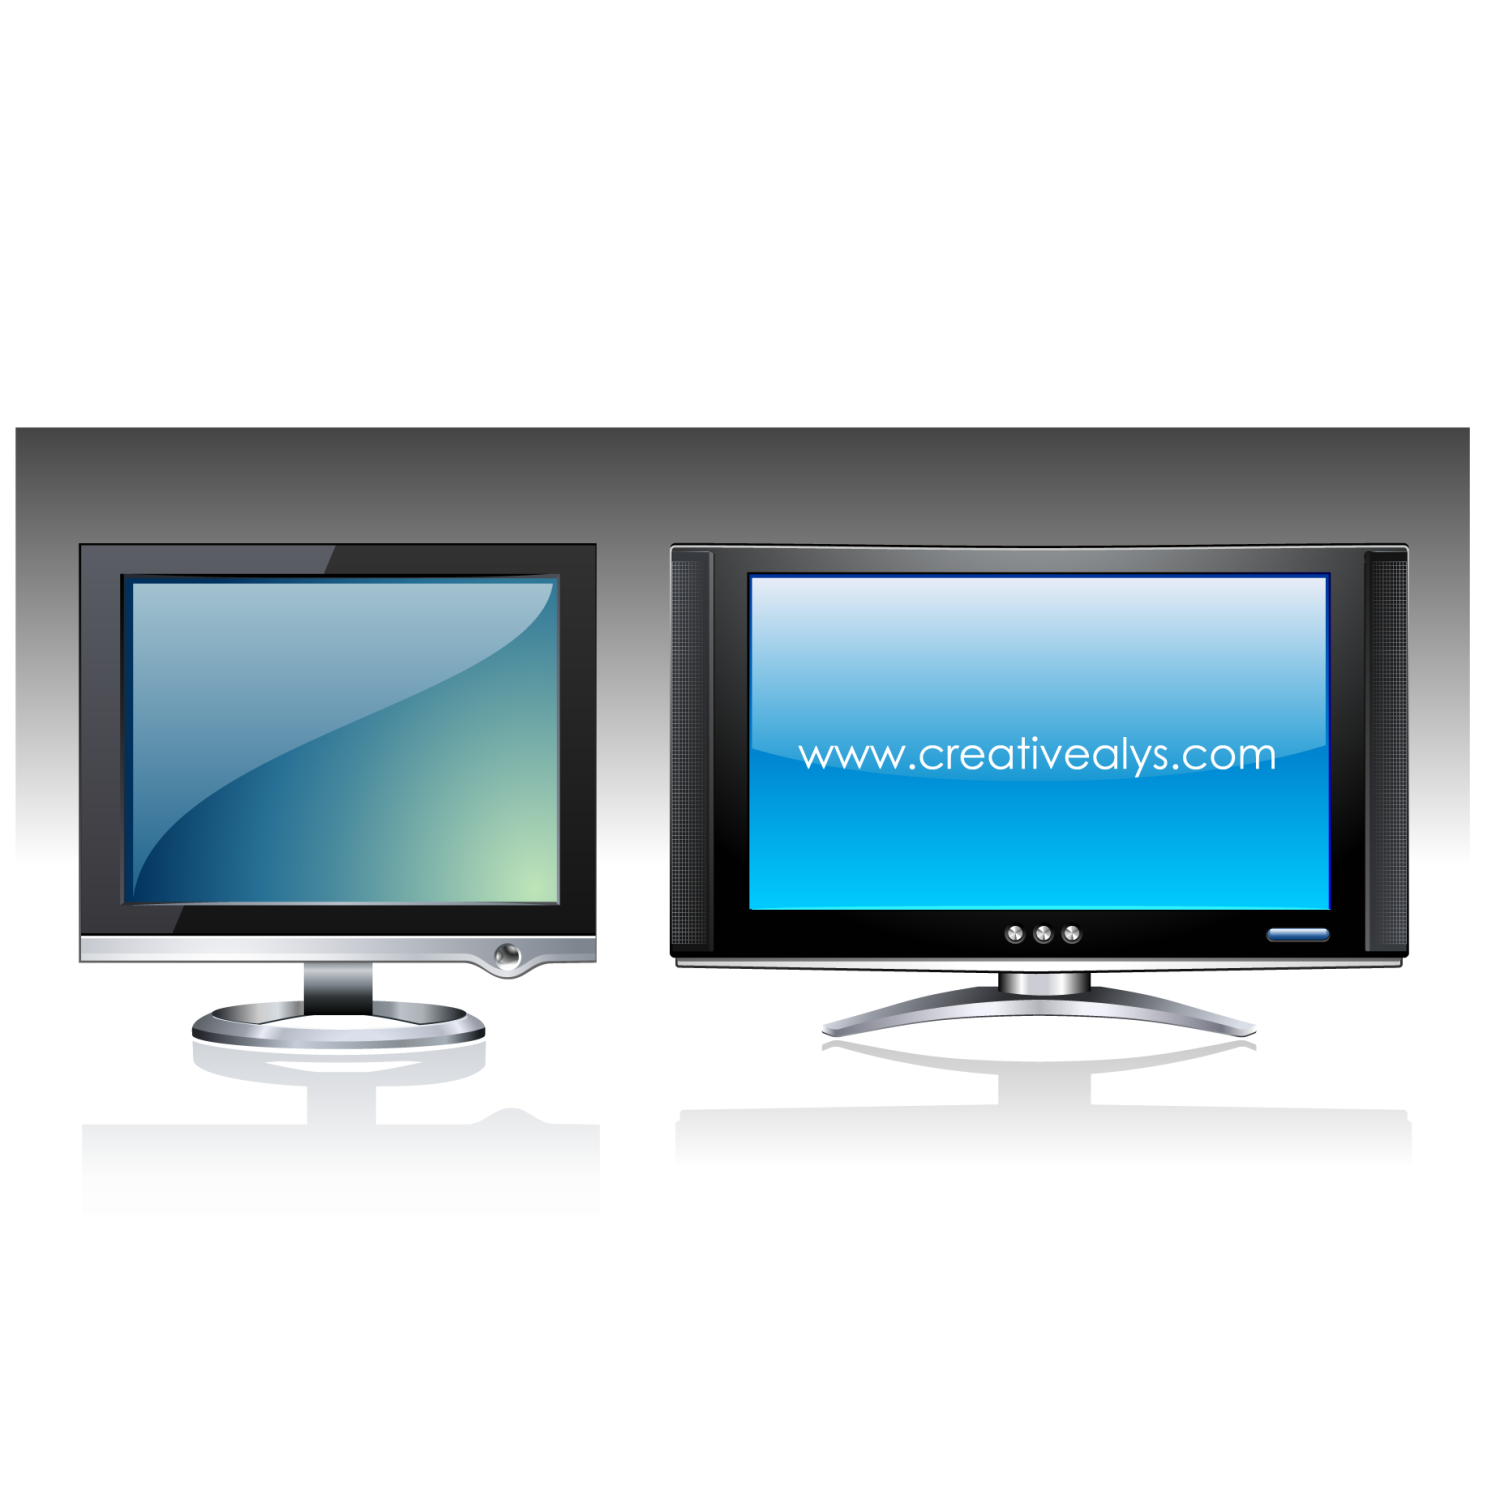 LCD in graphic design can be used for marketing a brand or a product. It can also be used as web design mockup to show how the website will look on LCD screen. Its in vector format, so you can customize it to your needs.